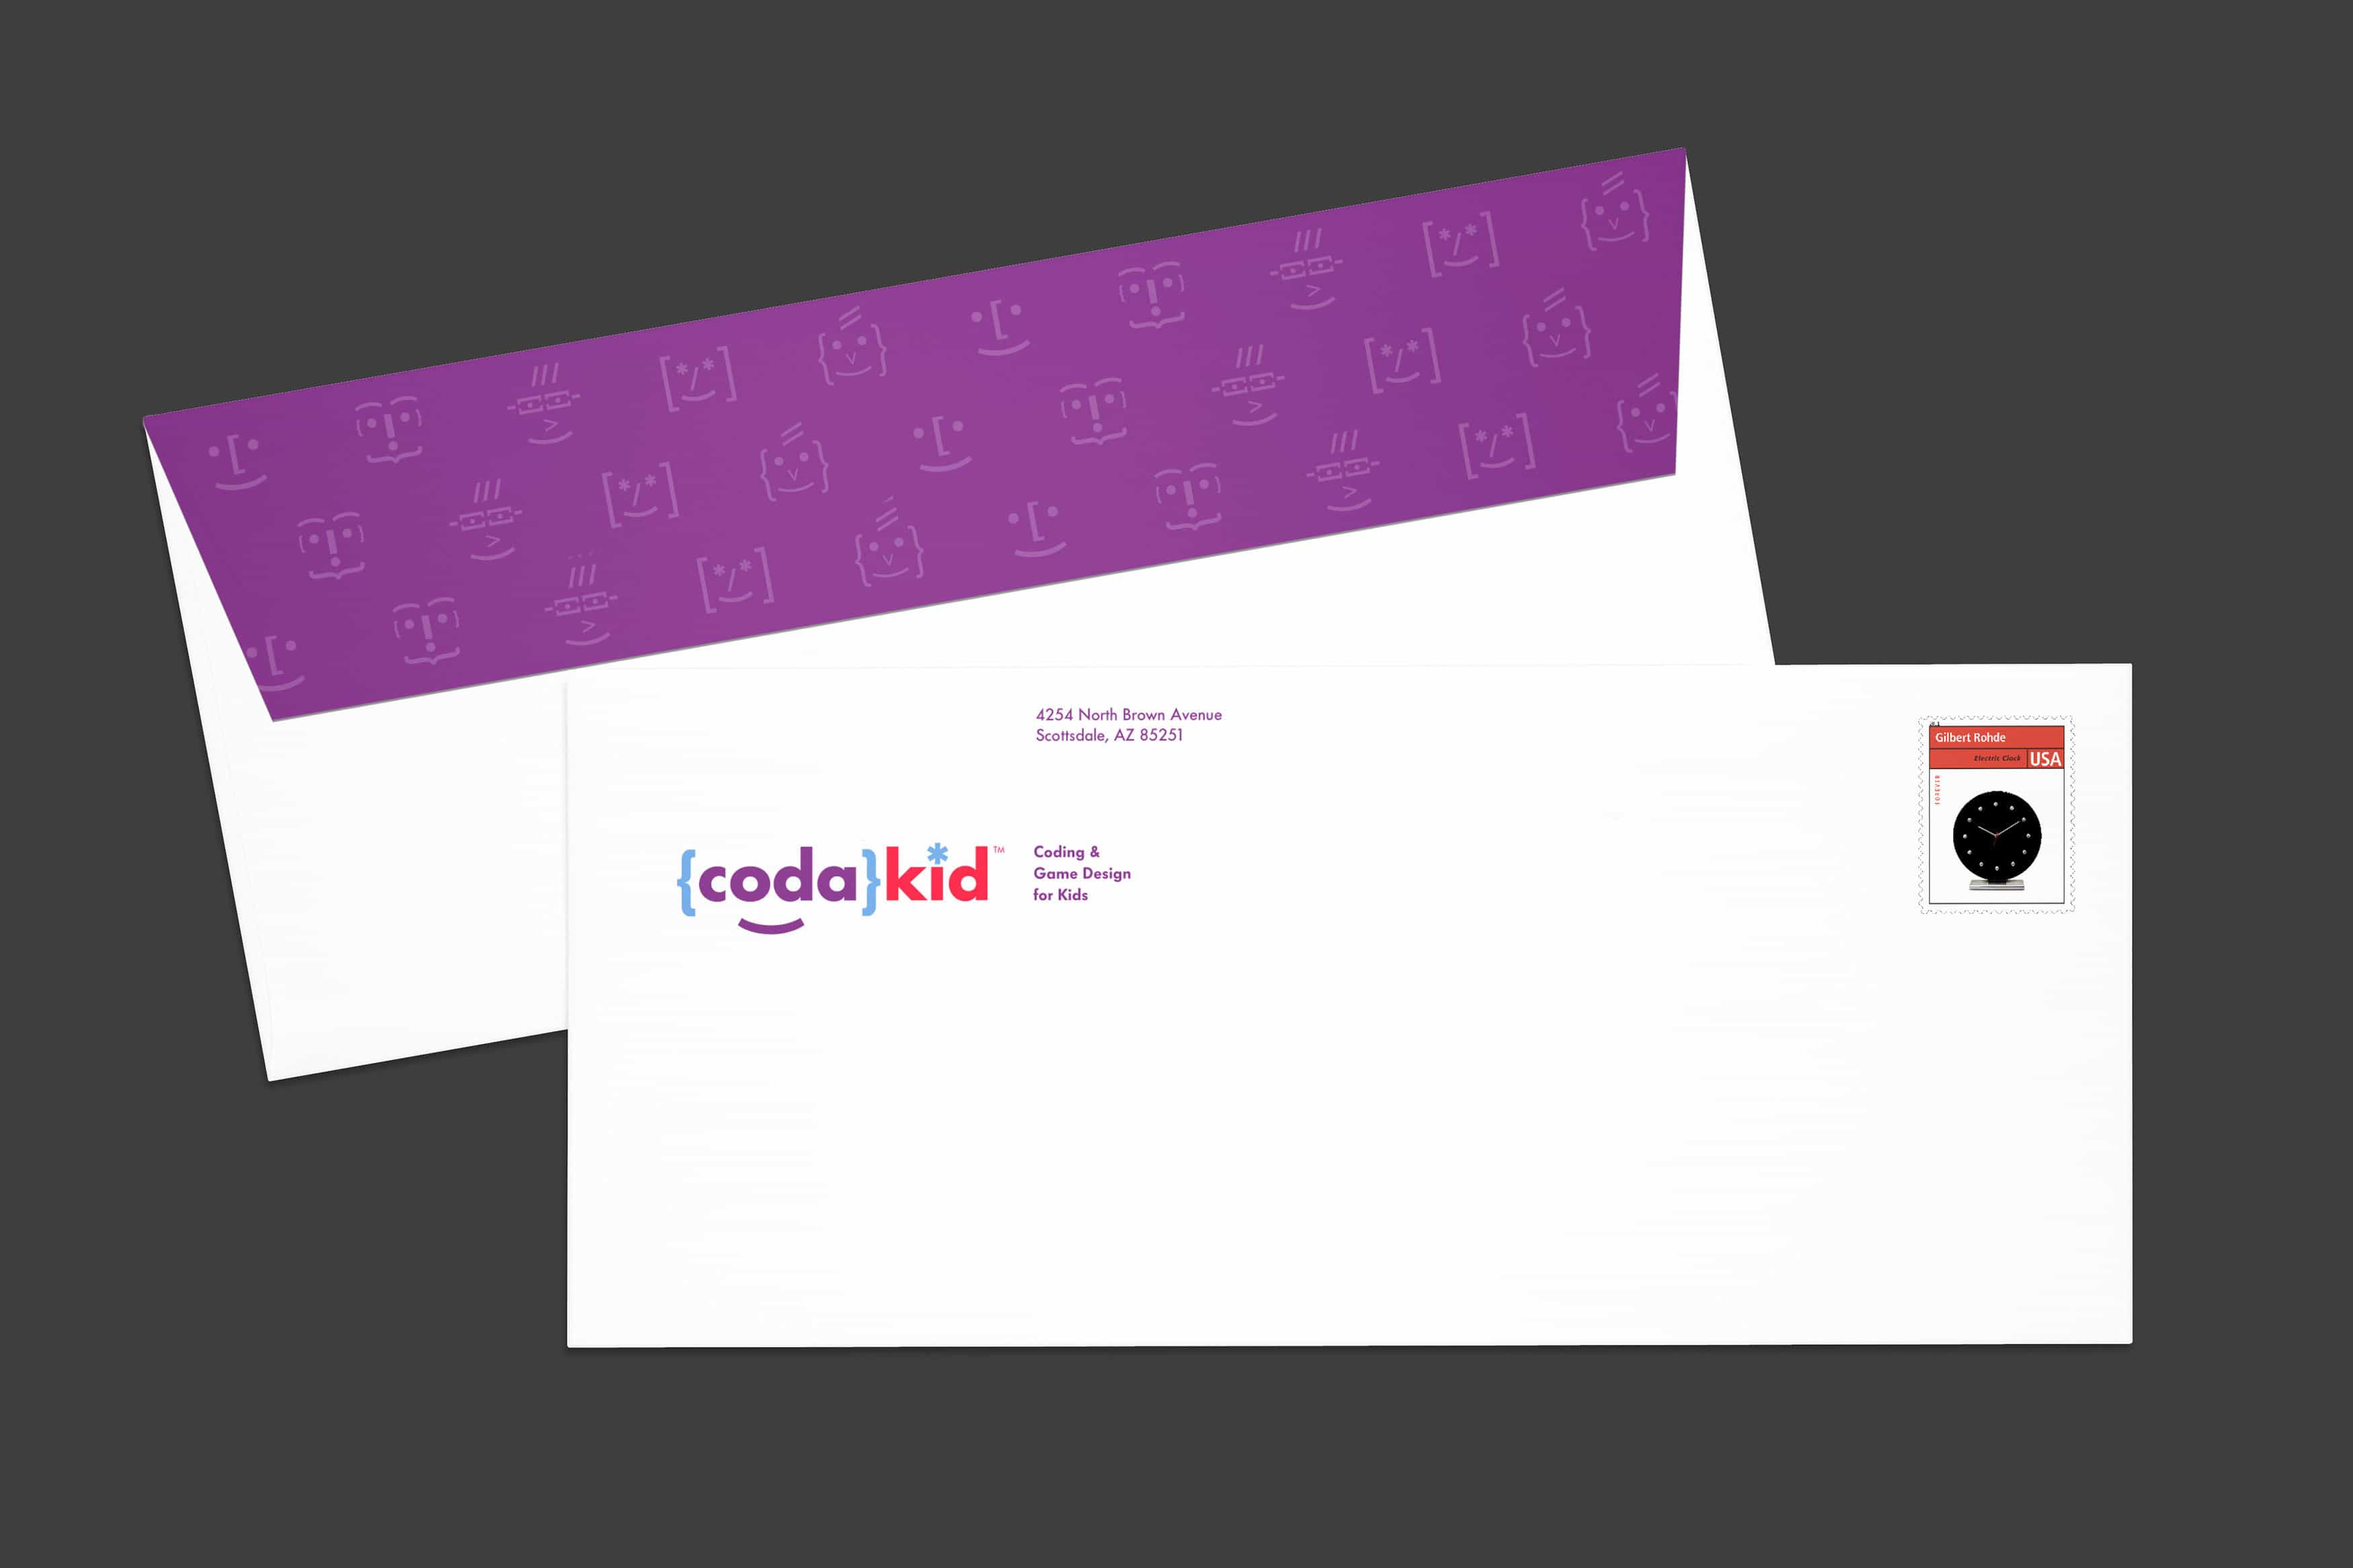 CodaKid Rebrand Application Envelope